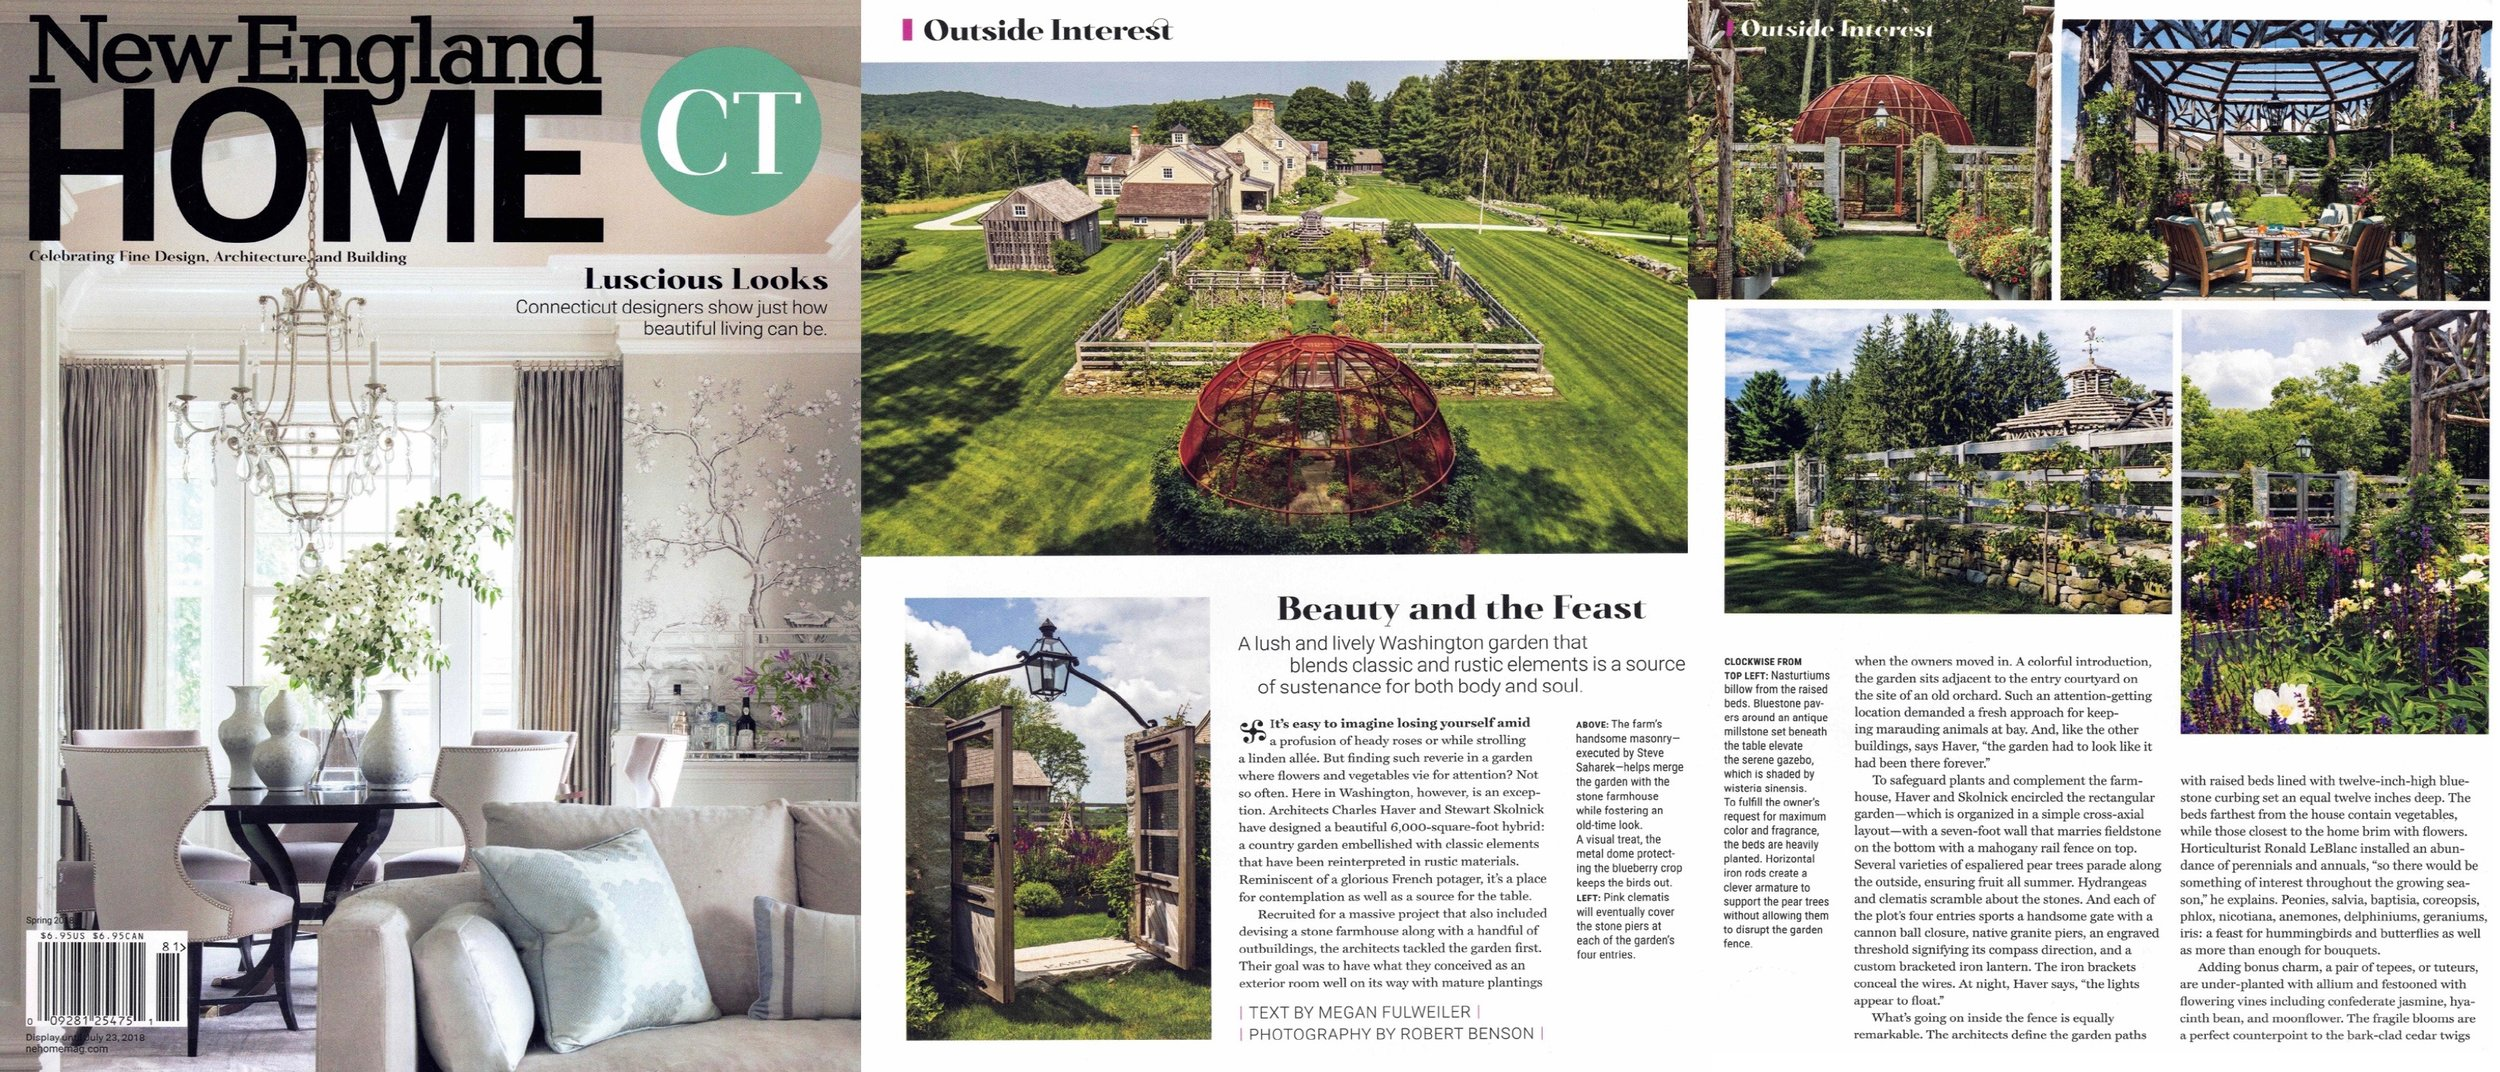 - Farmhouse Garden as featured in NEW ENGLAND HOME CT. Click on image for more.